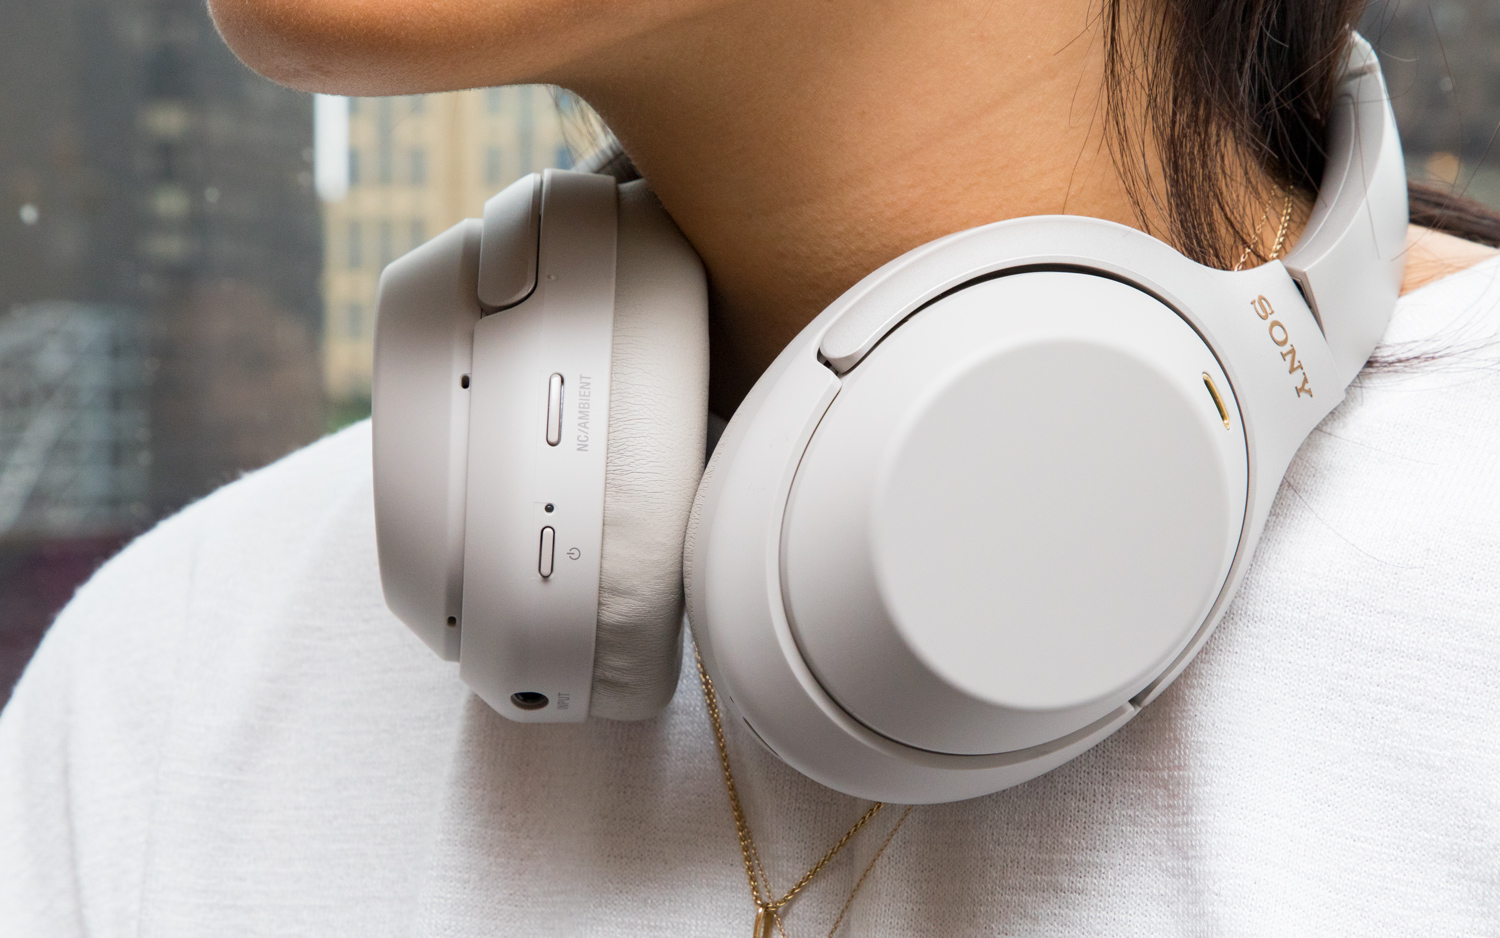 Sony WH-1000XM3 Review: Stellar Noise-Cancelling, Unbeatable